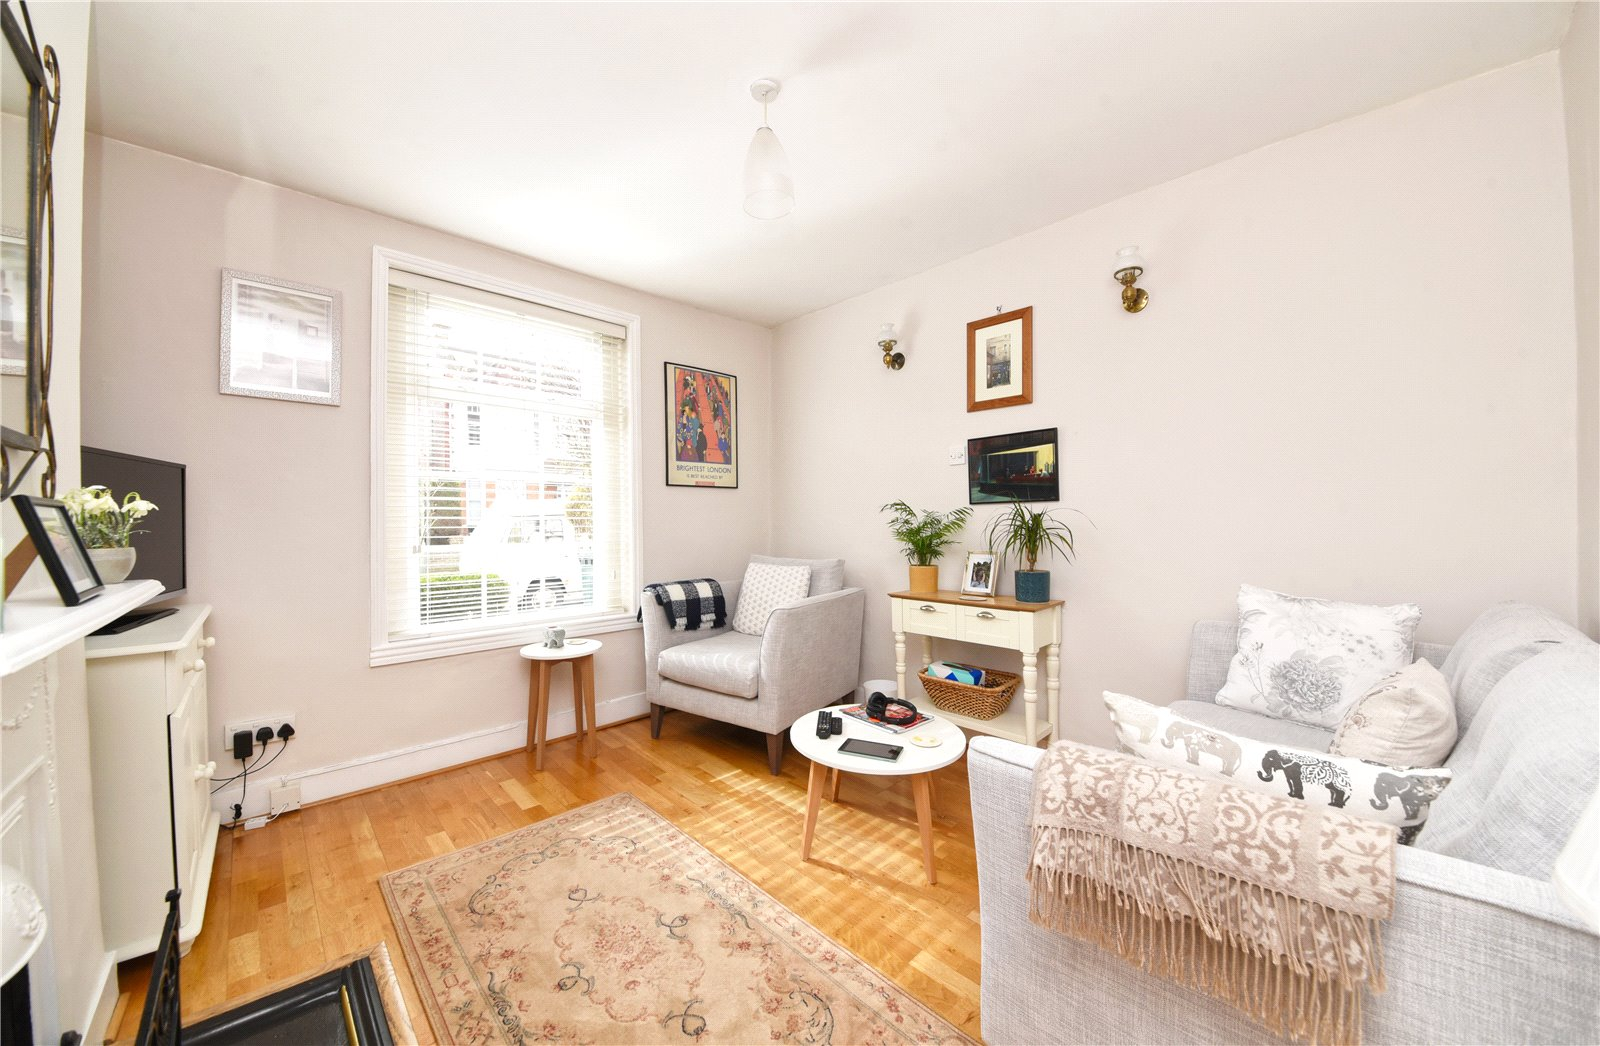 2 bed house for sale in London, N12 9JN 5